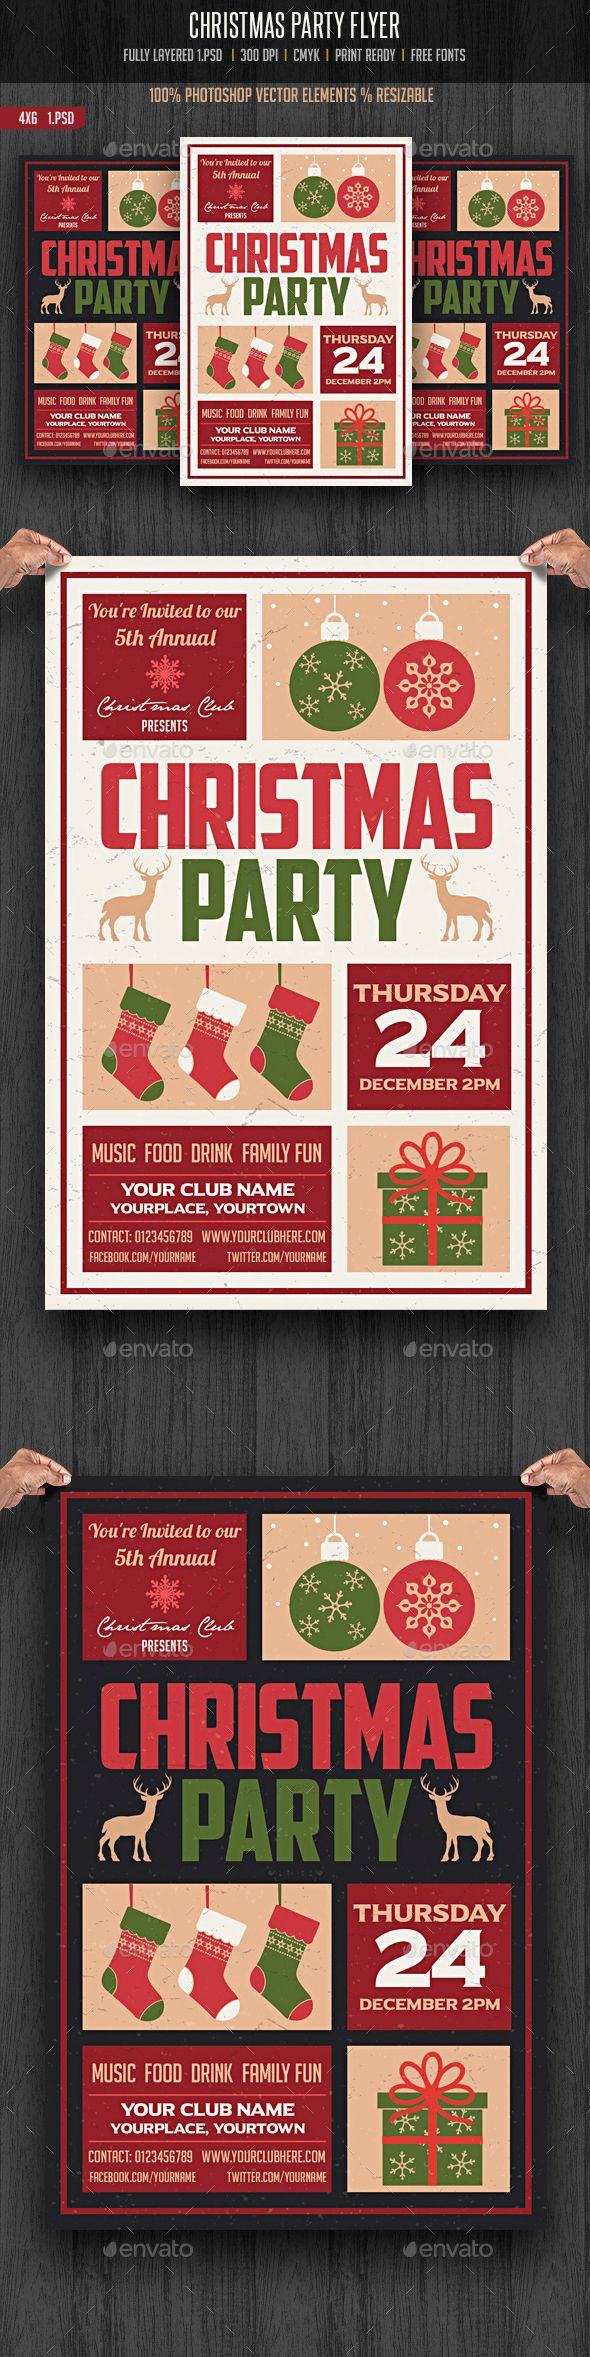 white christmas party flyer christmas parties be cool and graphics christmas party flyer